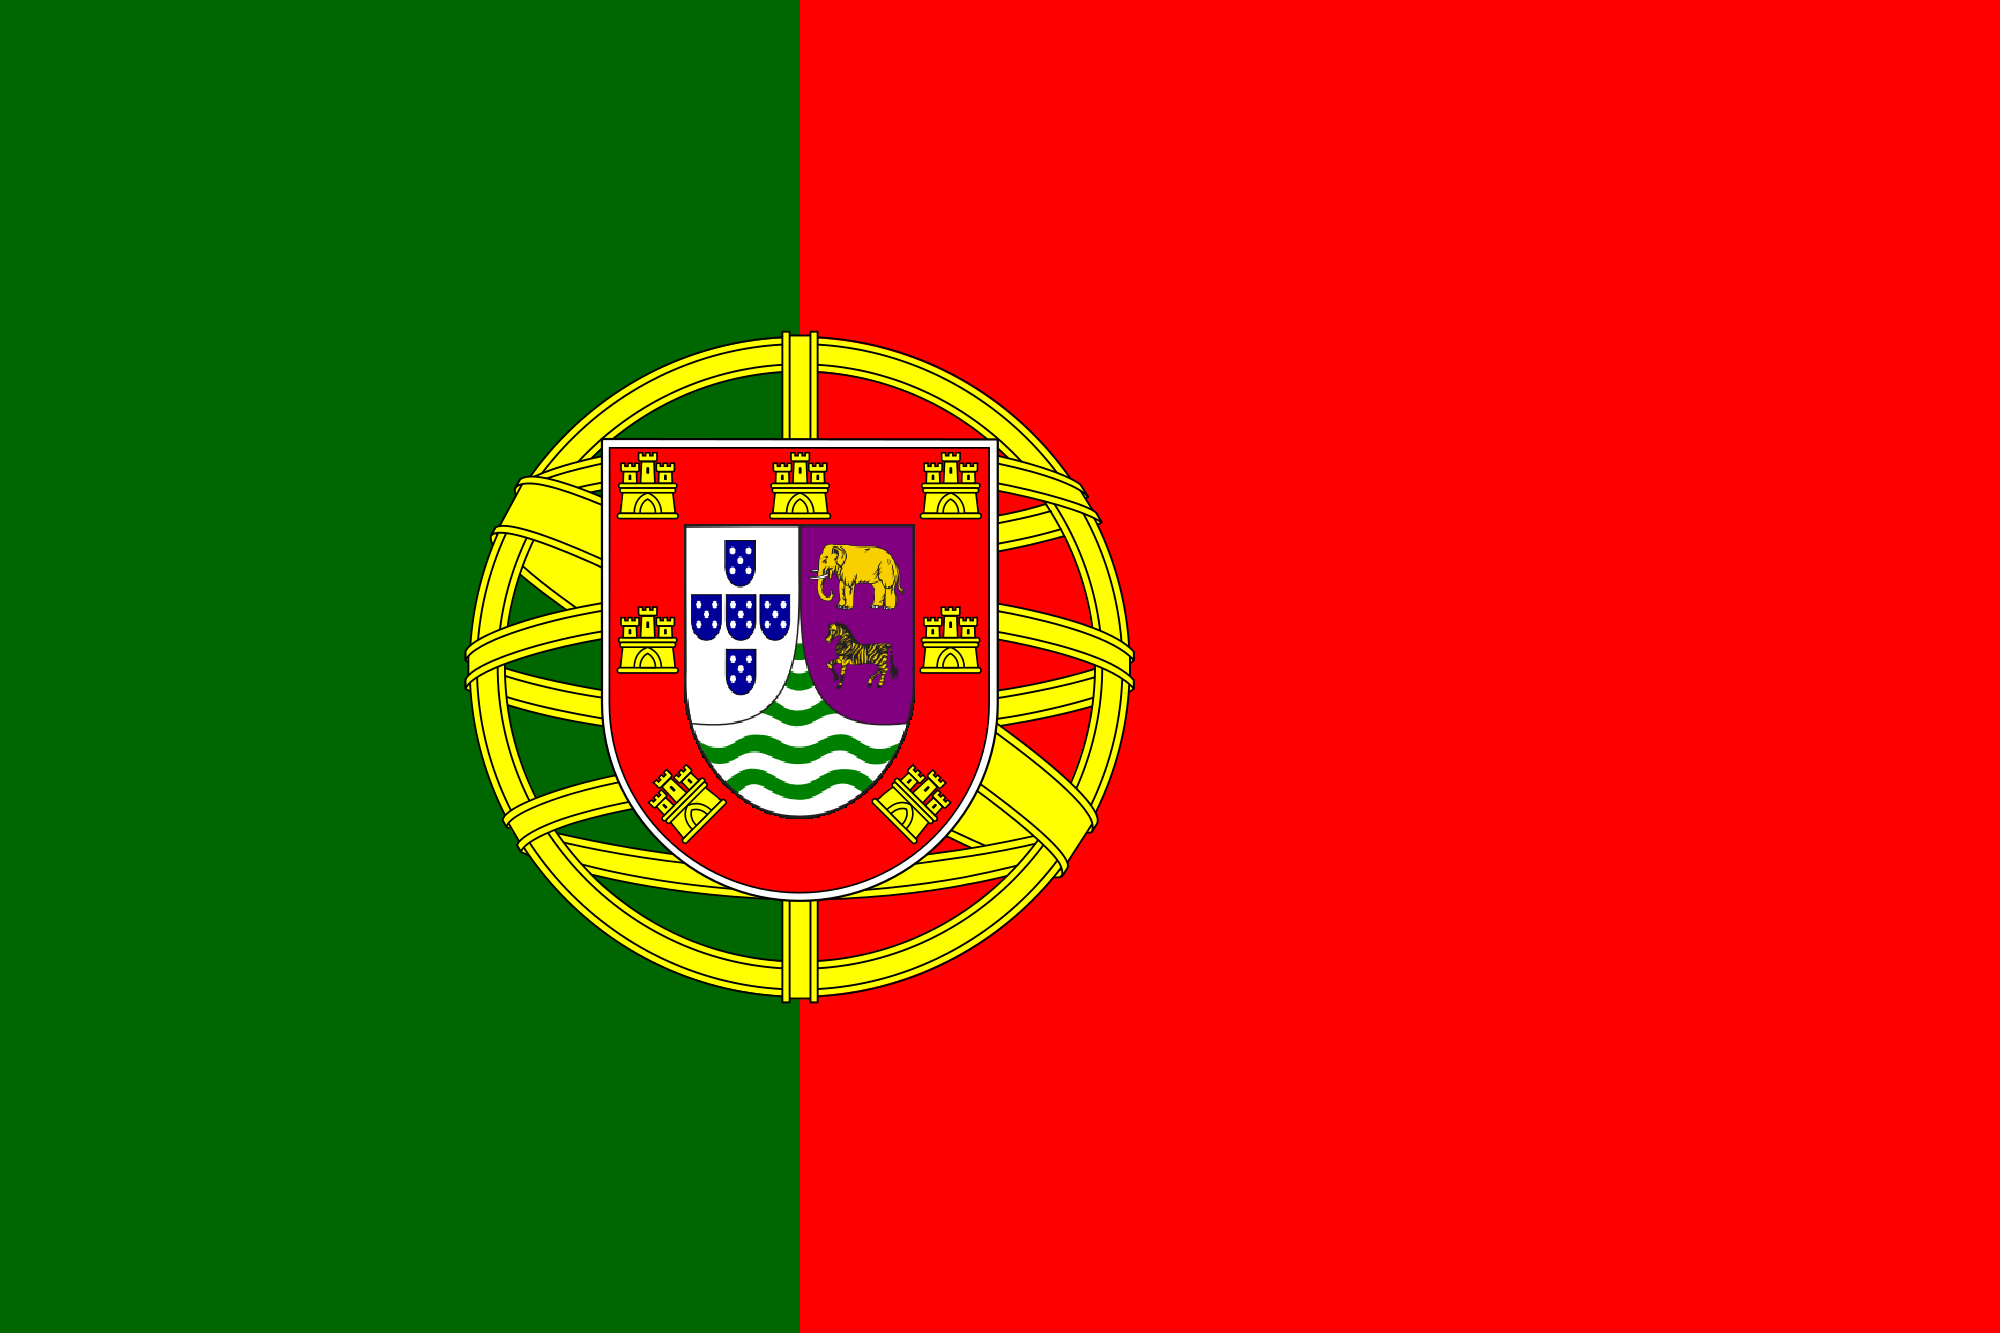 Flag Of Angola Backgrounds on Wallpapers Vista